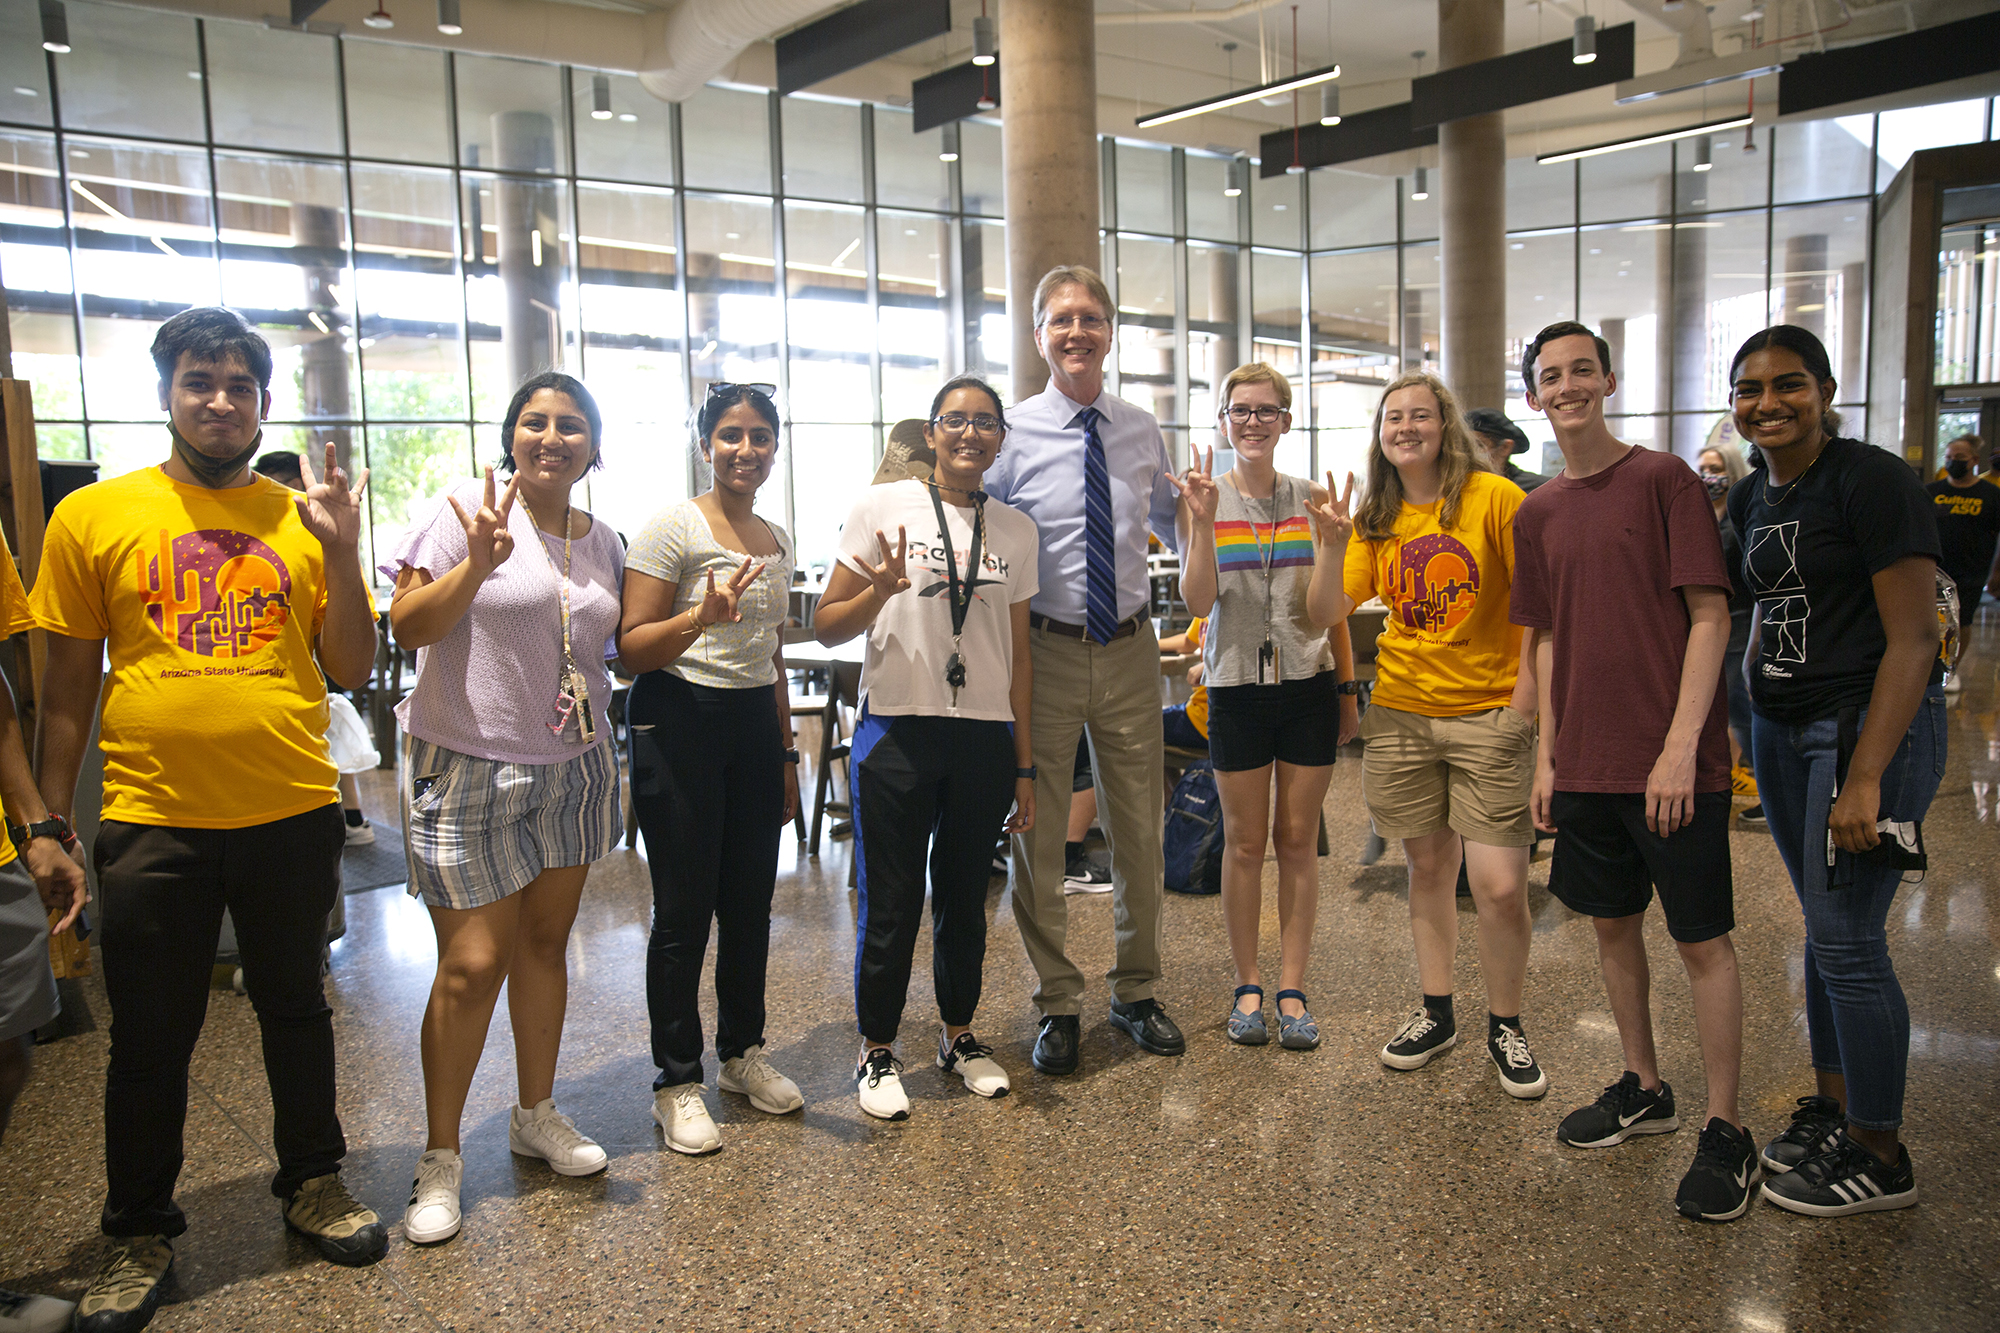 new students standing with Dean Kyle Squires